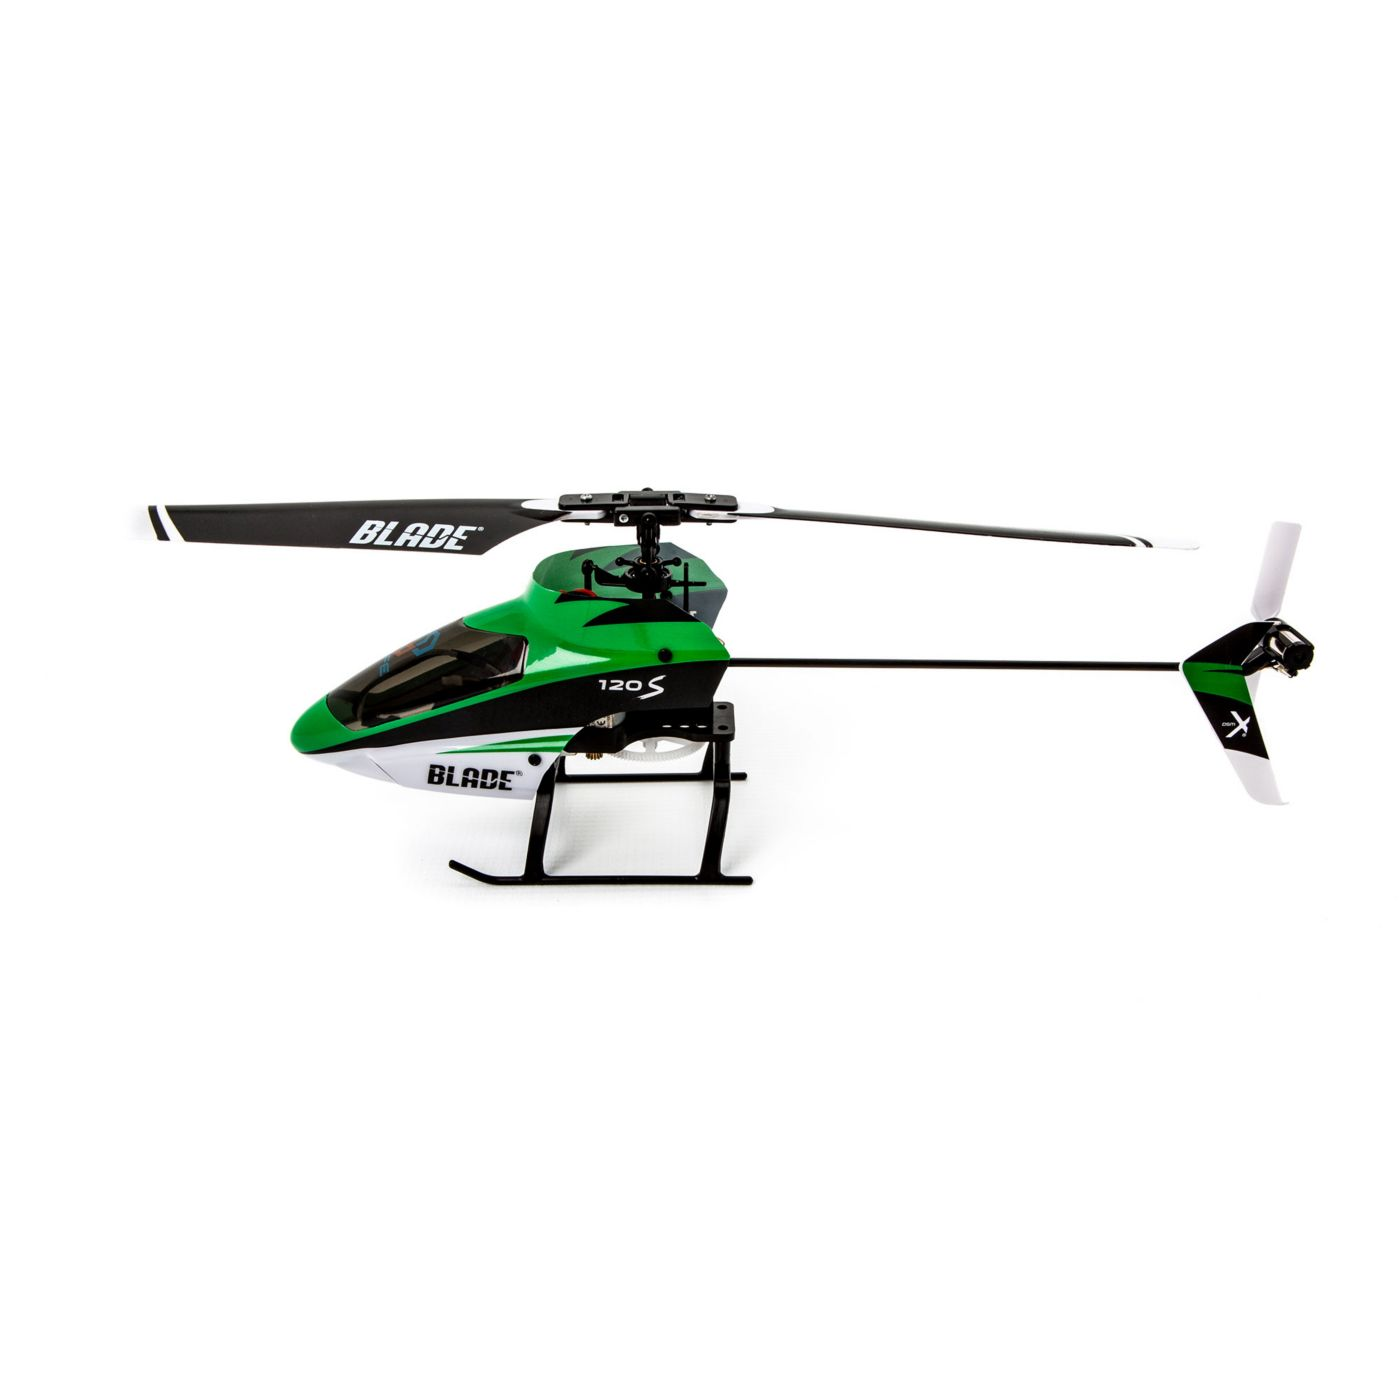 blade 120 sr rtf helicopter with Blade 120 Rtf P 26048 on Allnewge45rc further Eflite Blade 120 SR RTF BLH3100 together with Blade 120 Rtf P 26048 additionally Flite Blade SR 120 Electric RC Helicopter Parts Single Rotor LiPo likewise Pieces Blade 120 Sr C107 520 257 753.